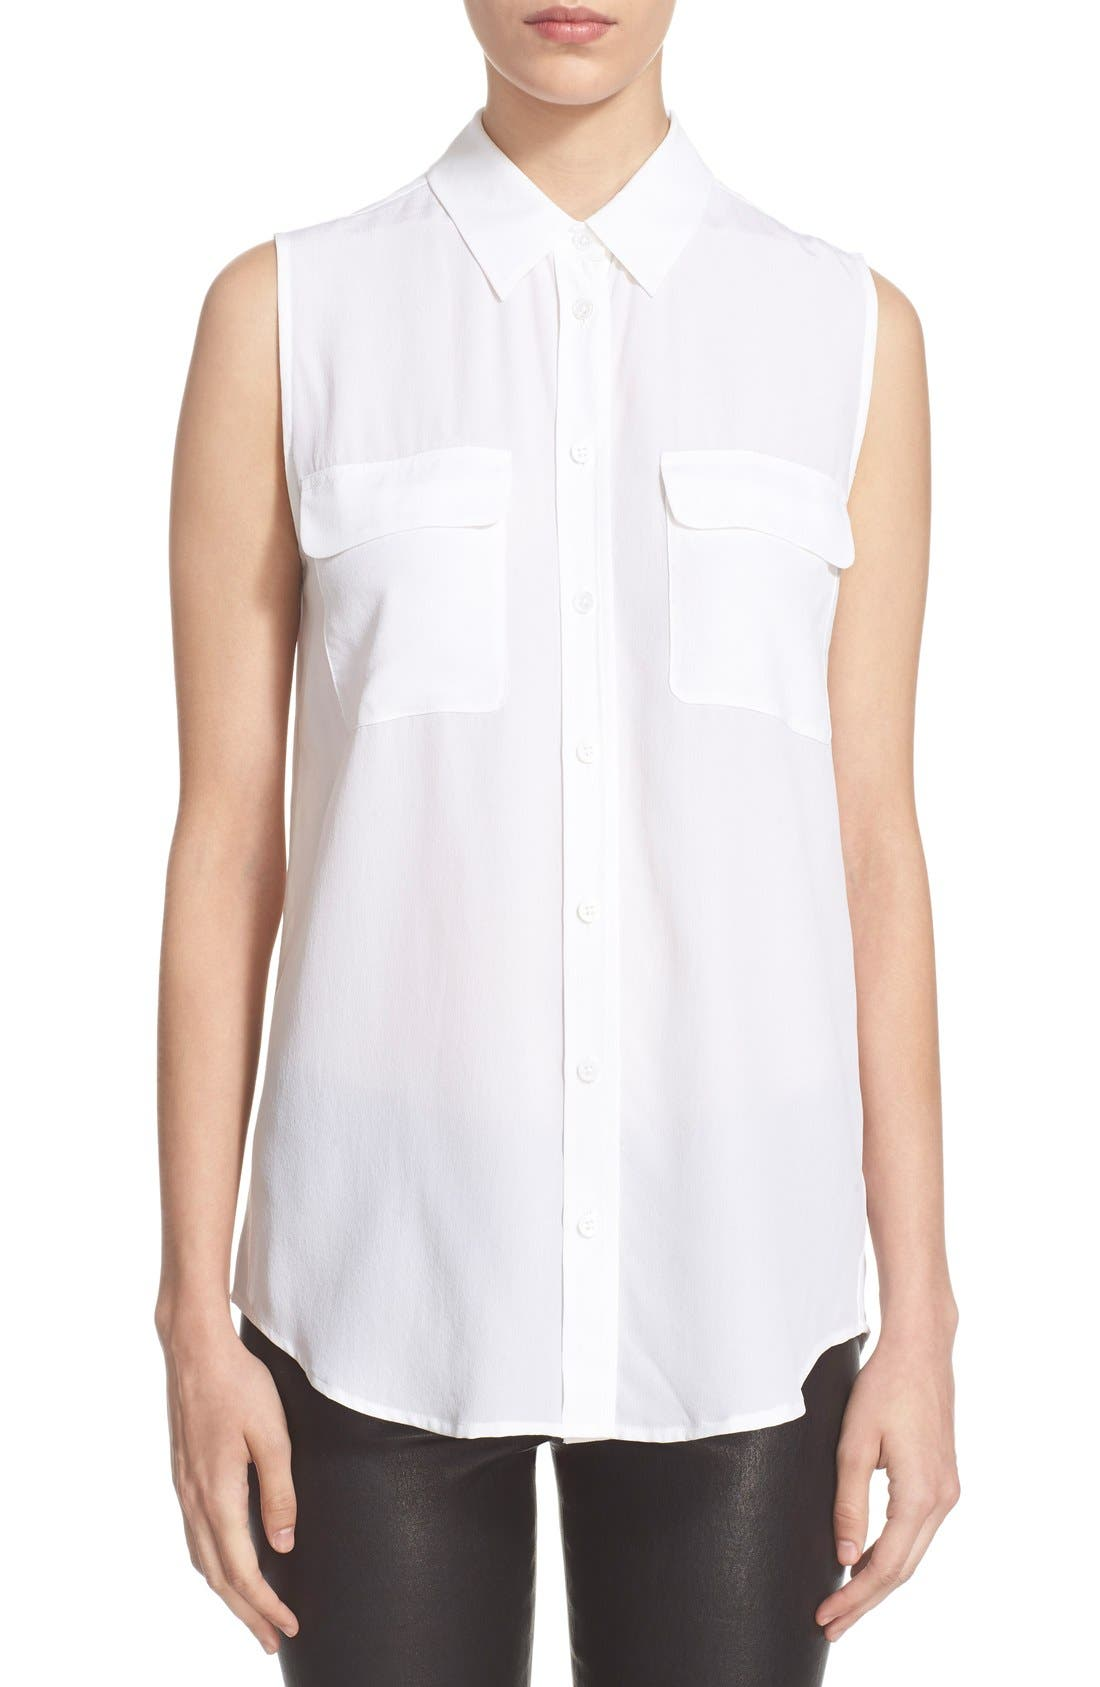 Equipment 'Slim Signature' Sleeveless Silk Shirt